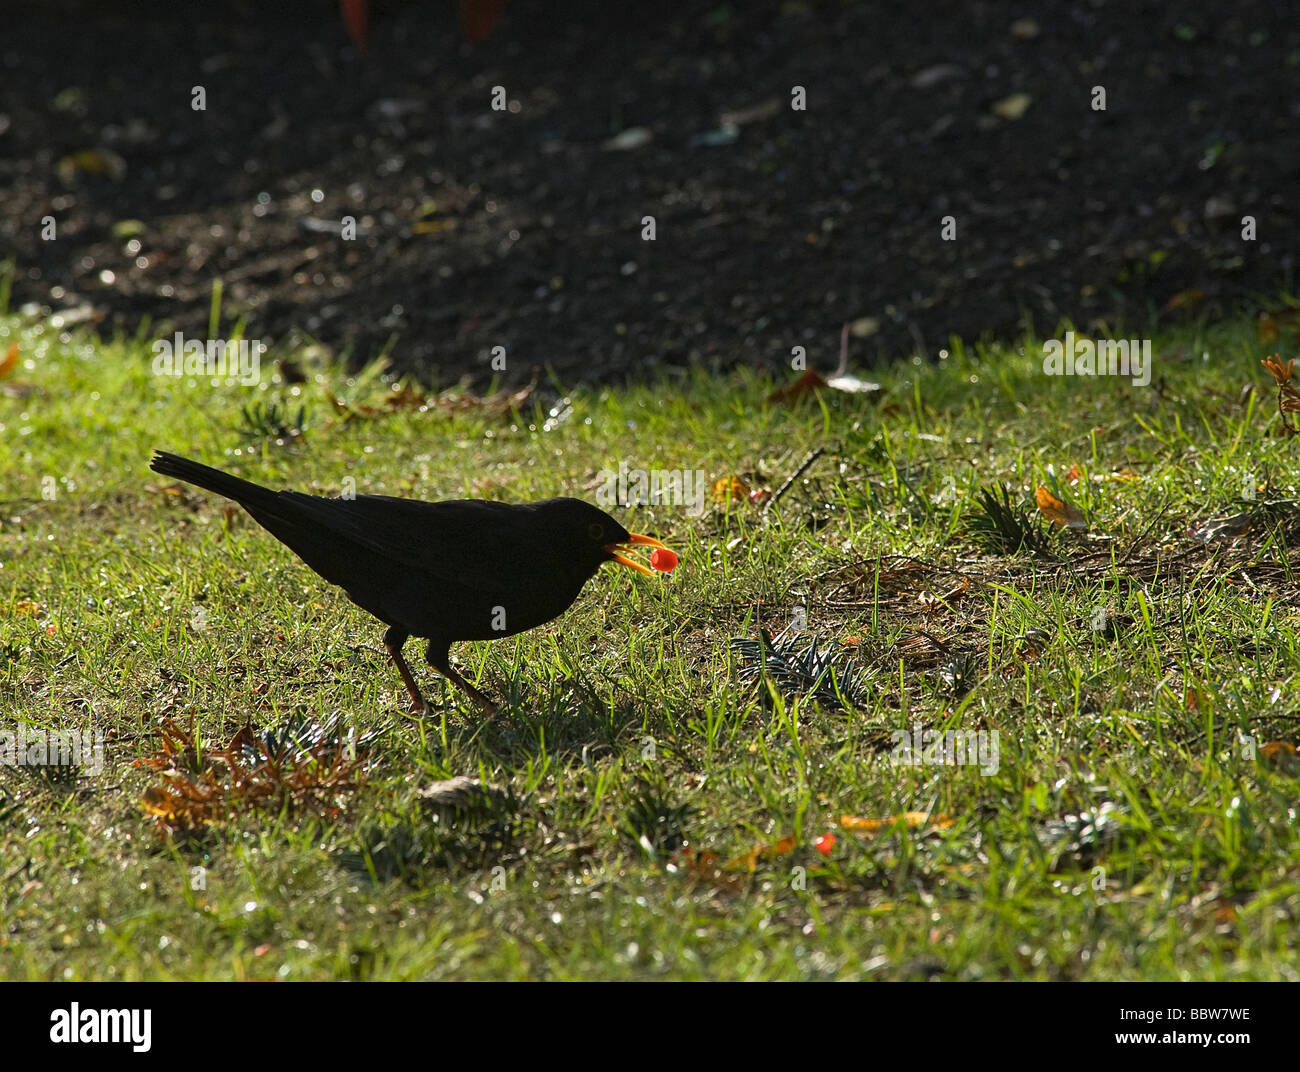 Male blackbird picking up fallen yew Taxus baccata aril early in the morning - Stock Image